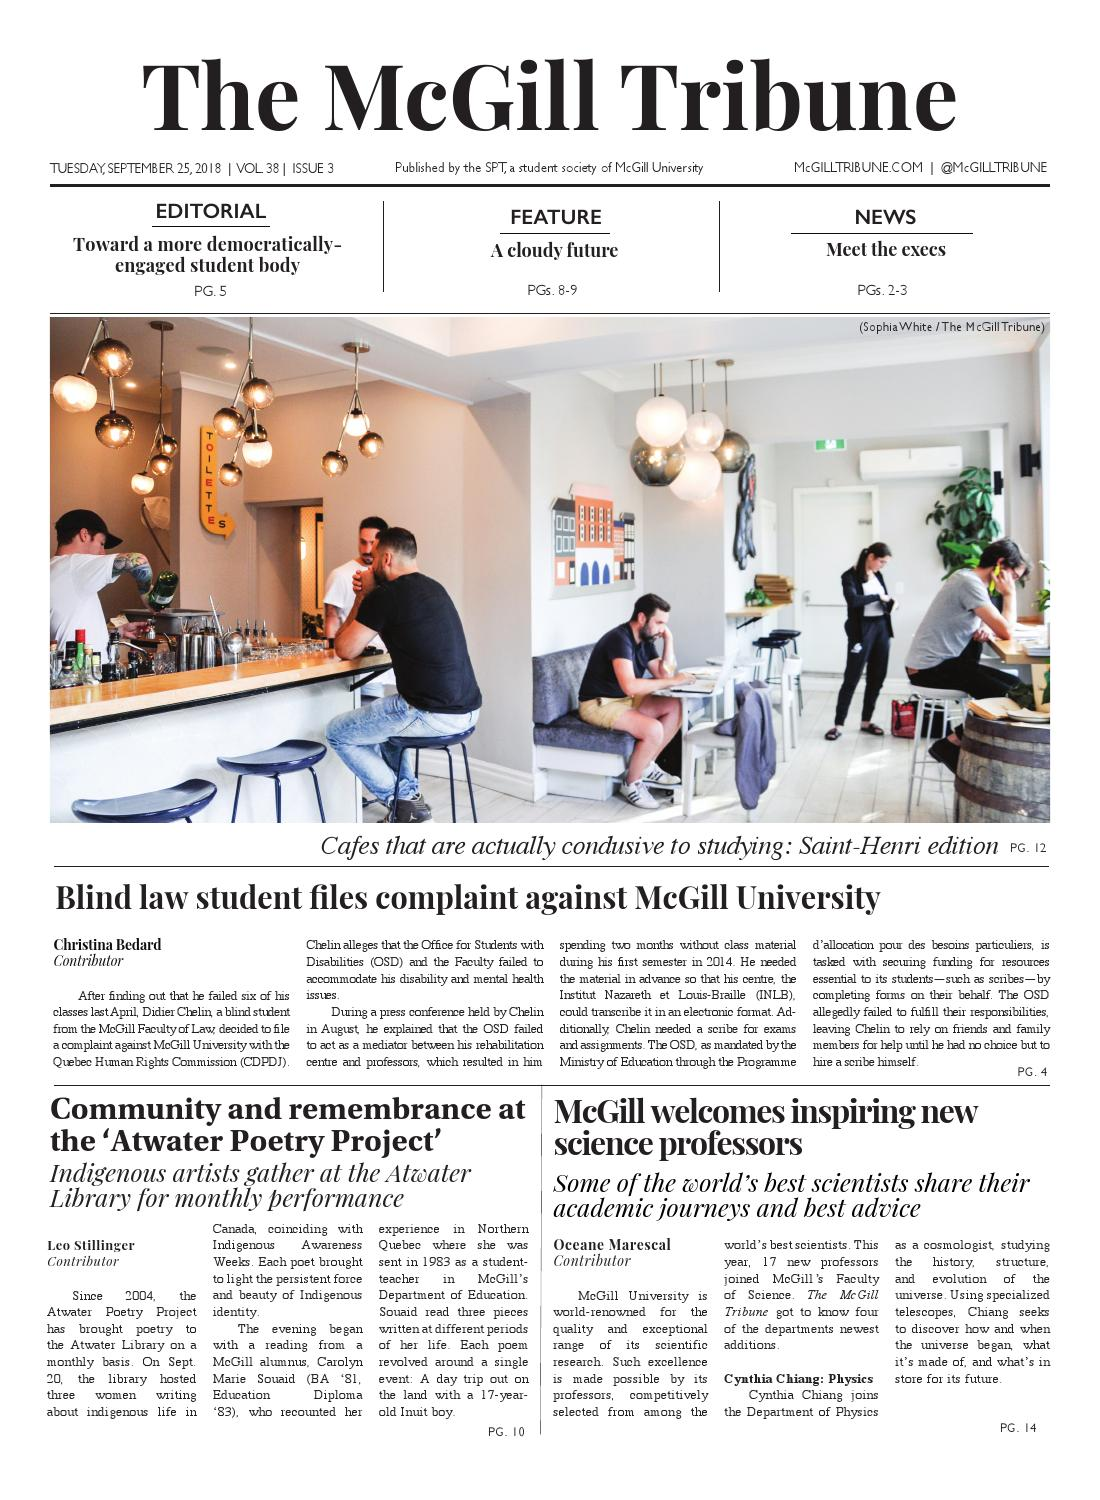 The McGill Tribune Volume 38 Issue 3 by The McGill Tribune